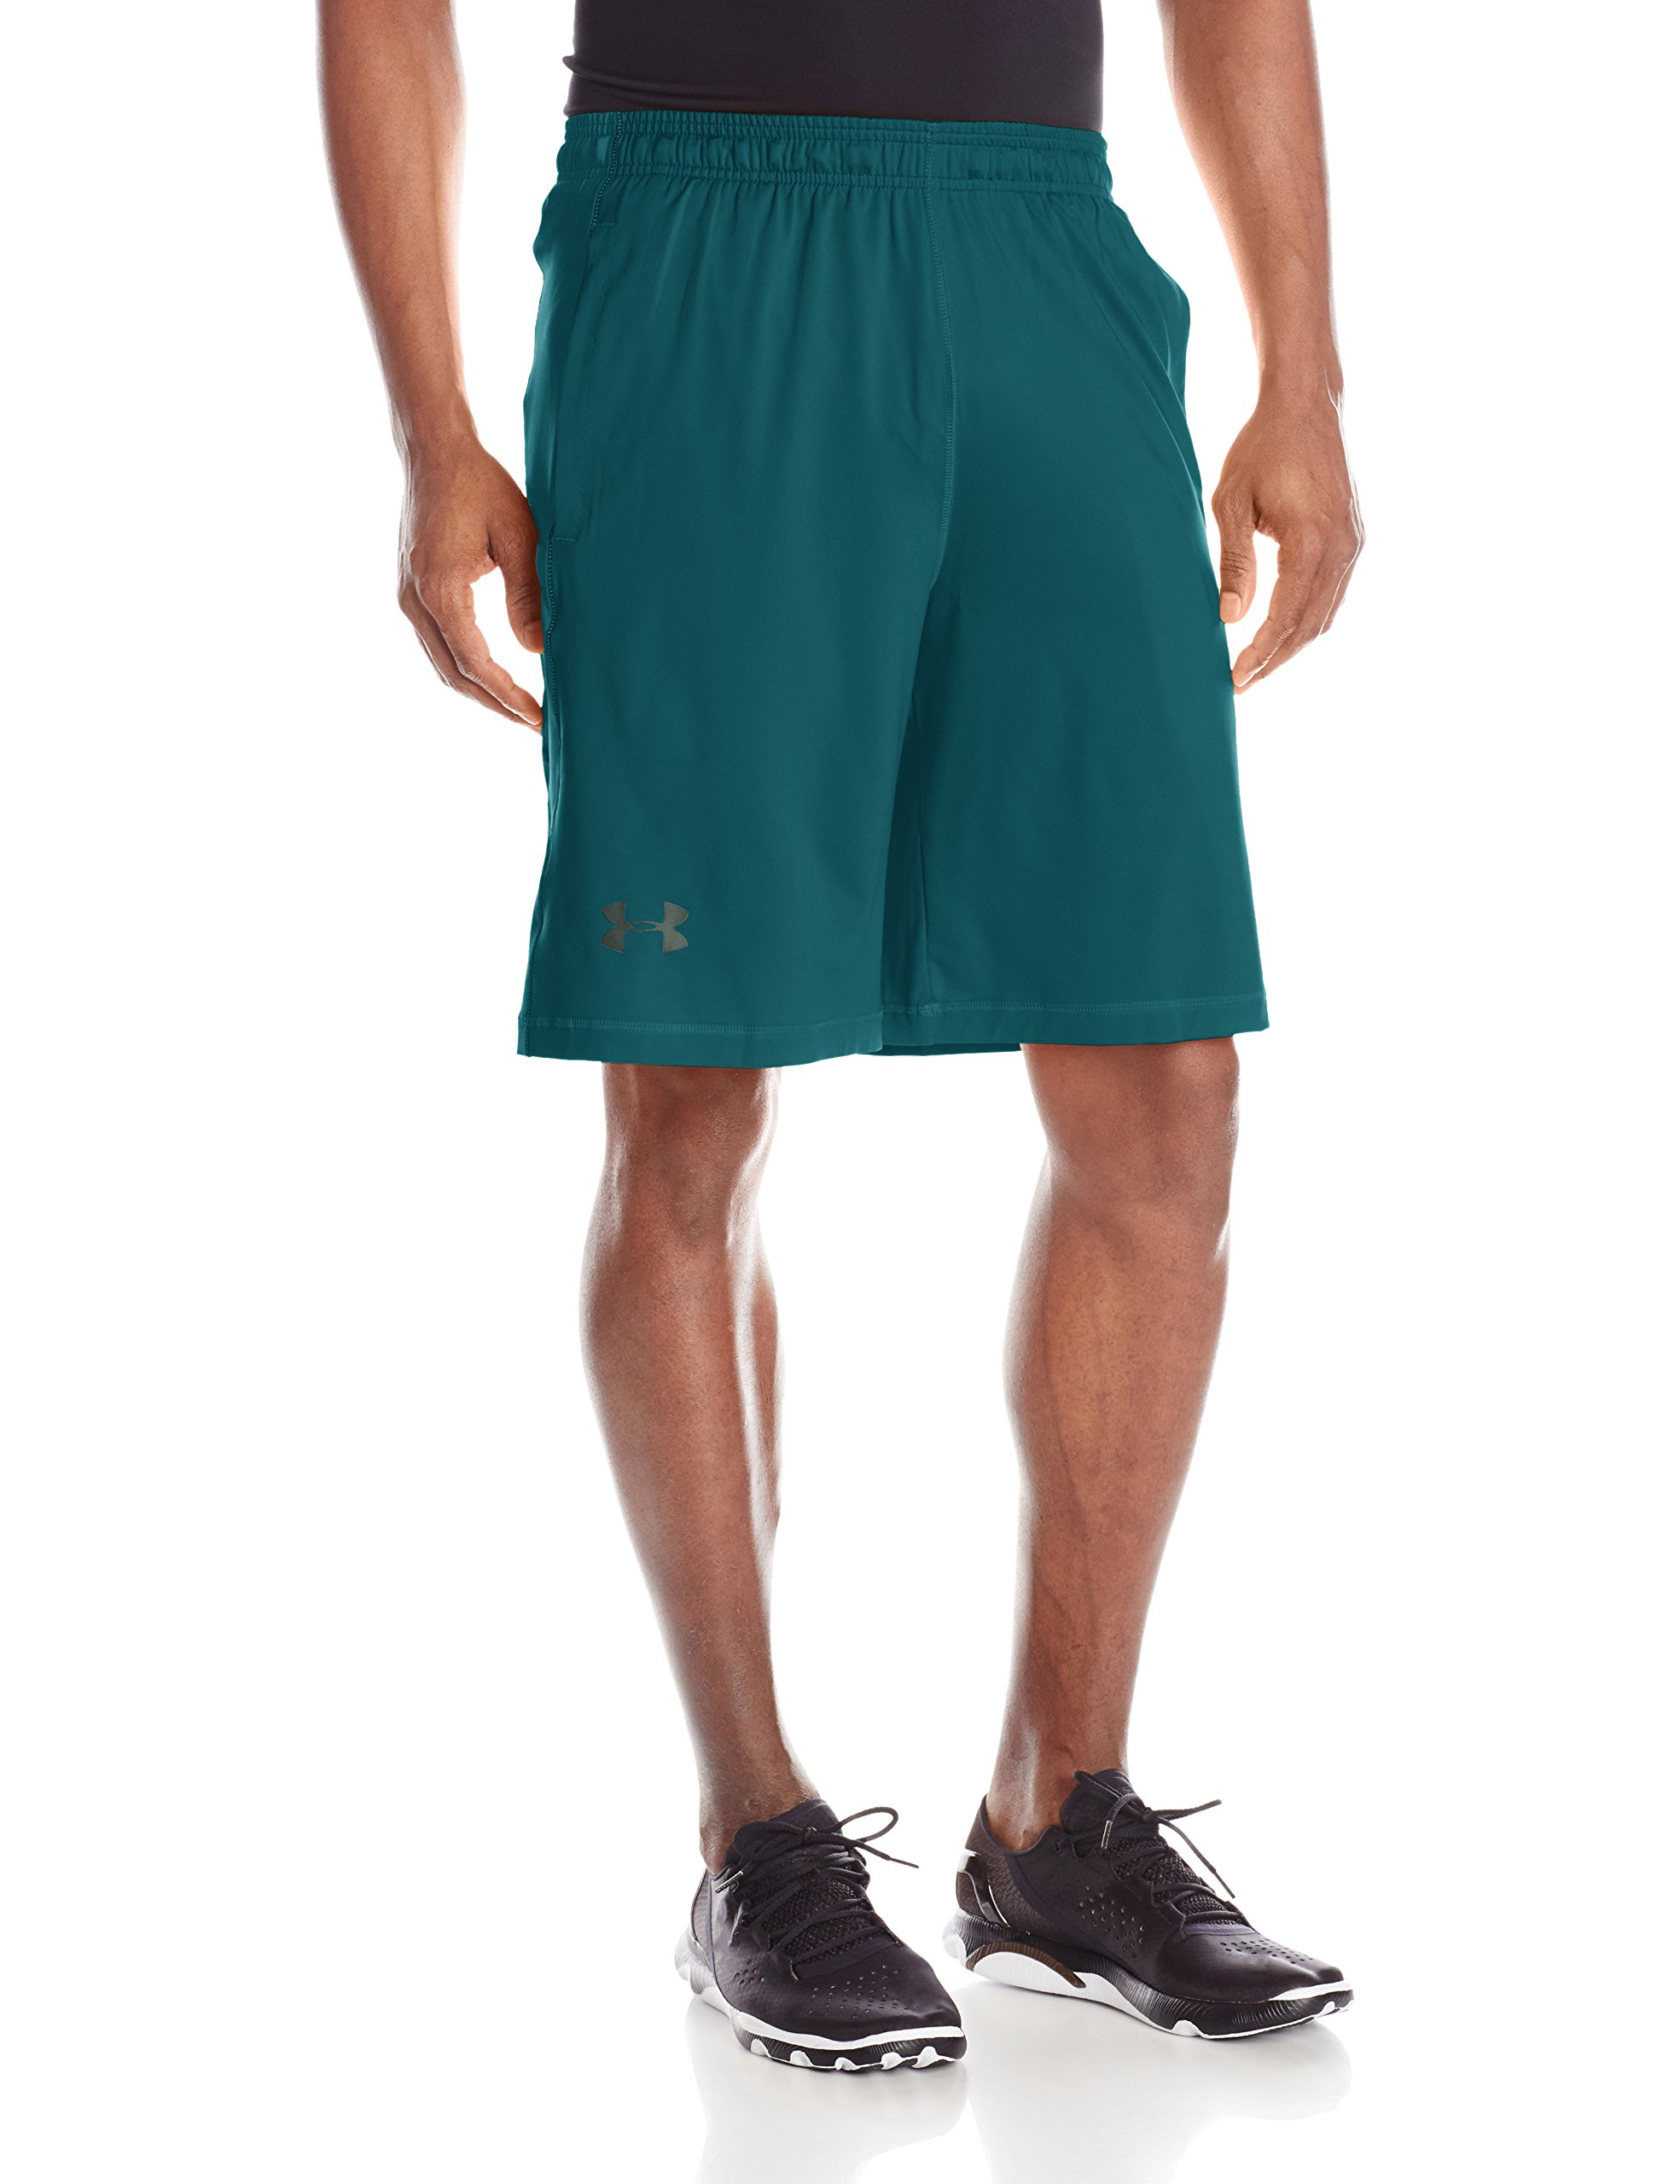 Under Armour Men's Raid 10'' Shorts, Tourmaline Teal /Stealth Gray, Small